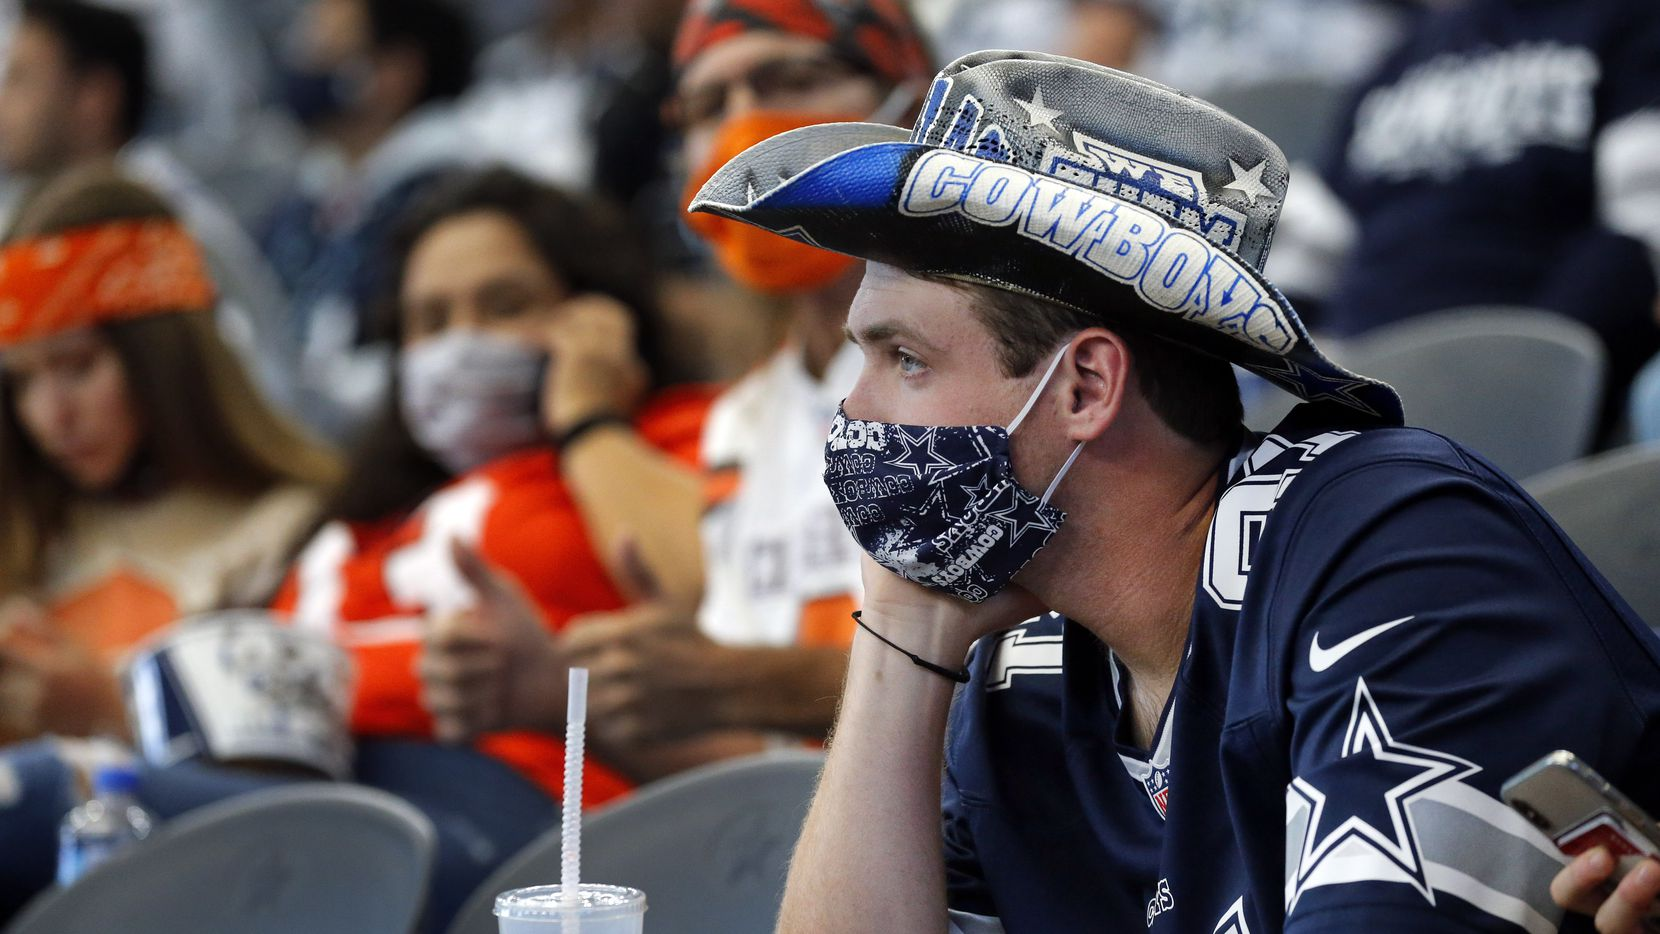 Dallas Cowboys fan Johnathan Threet of Lindale, Texas watches as his team falls further behind the Cleveland Browns during the third quarter at AT&T Stadium in Arlington, Texas, Sunday, October 4, 2020. The Cowboys lost, 48-39. (Tom Fox/The Dallas Morning News)